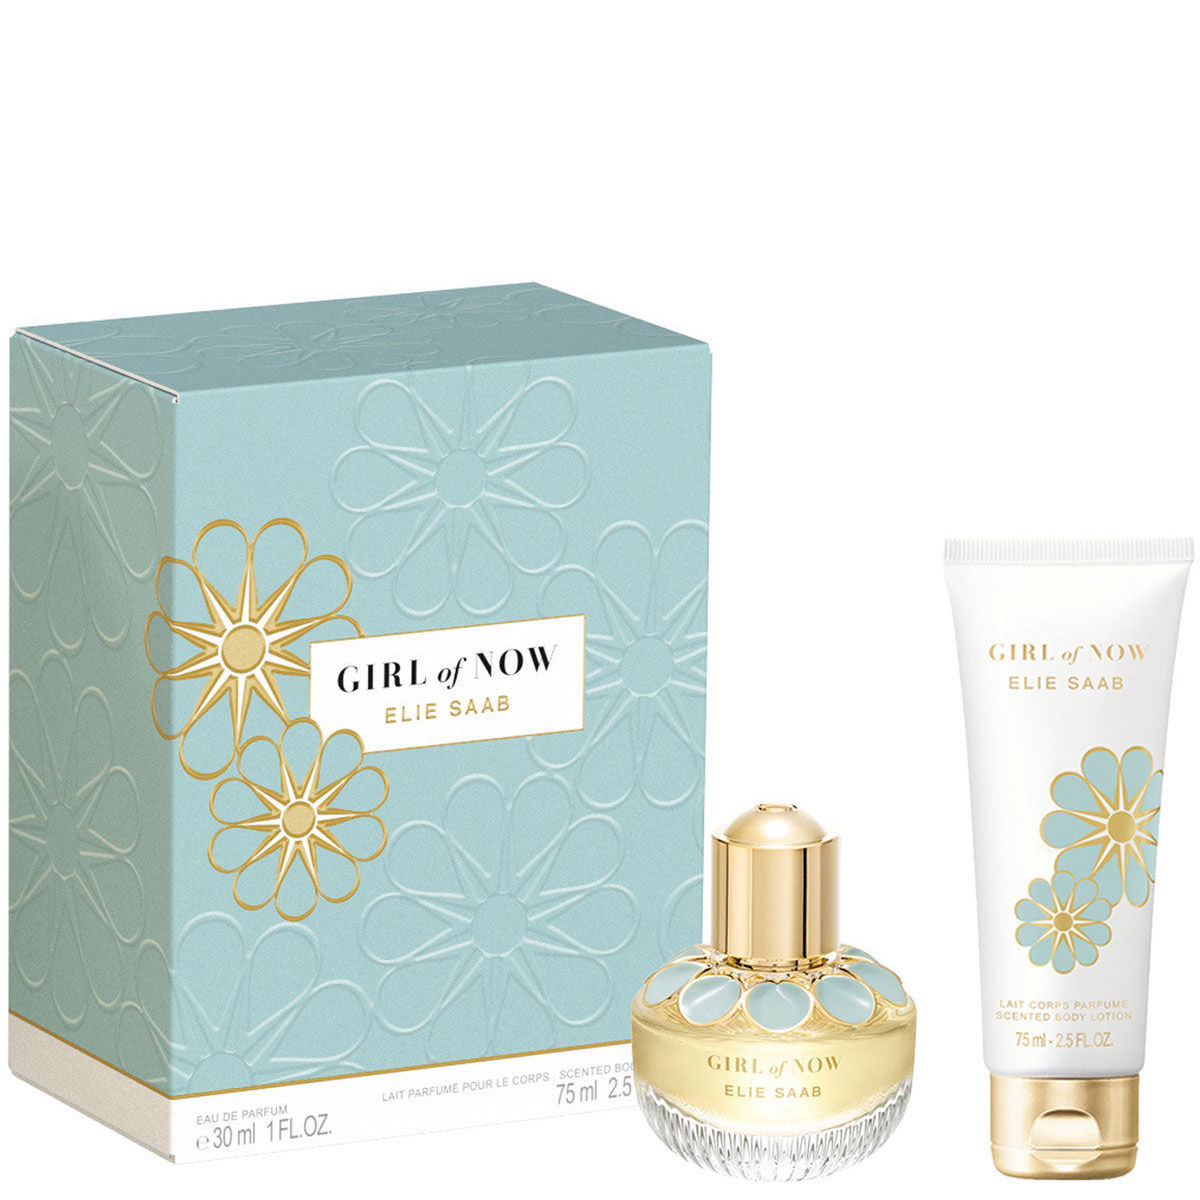 Afbeelding van Elie Saab Girl of Now 30 ml set